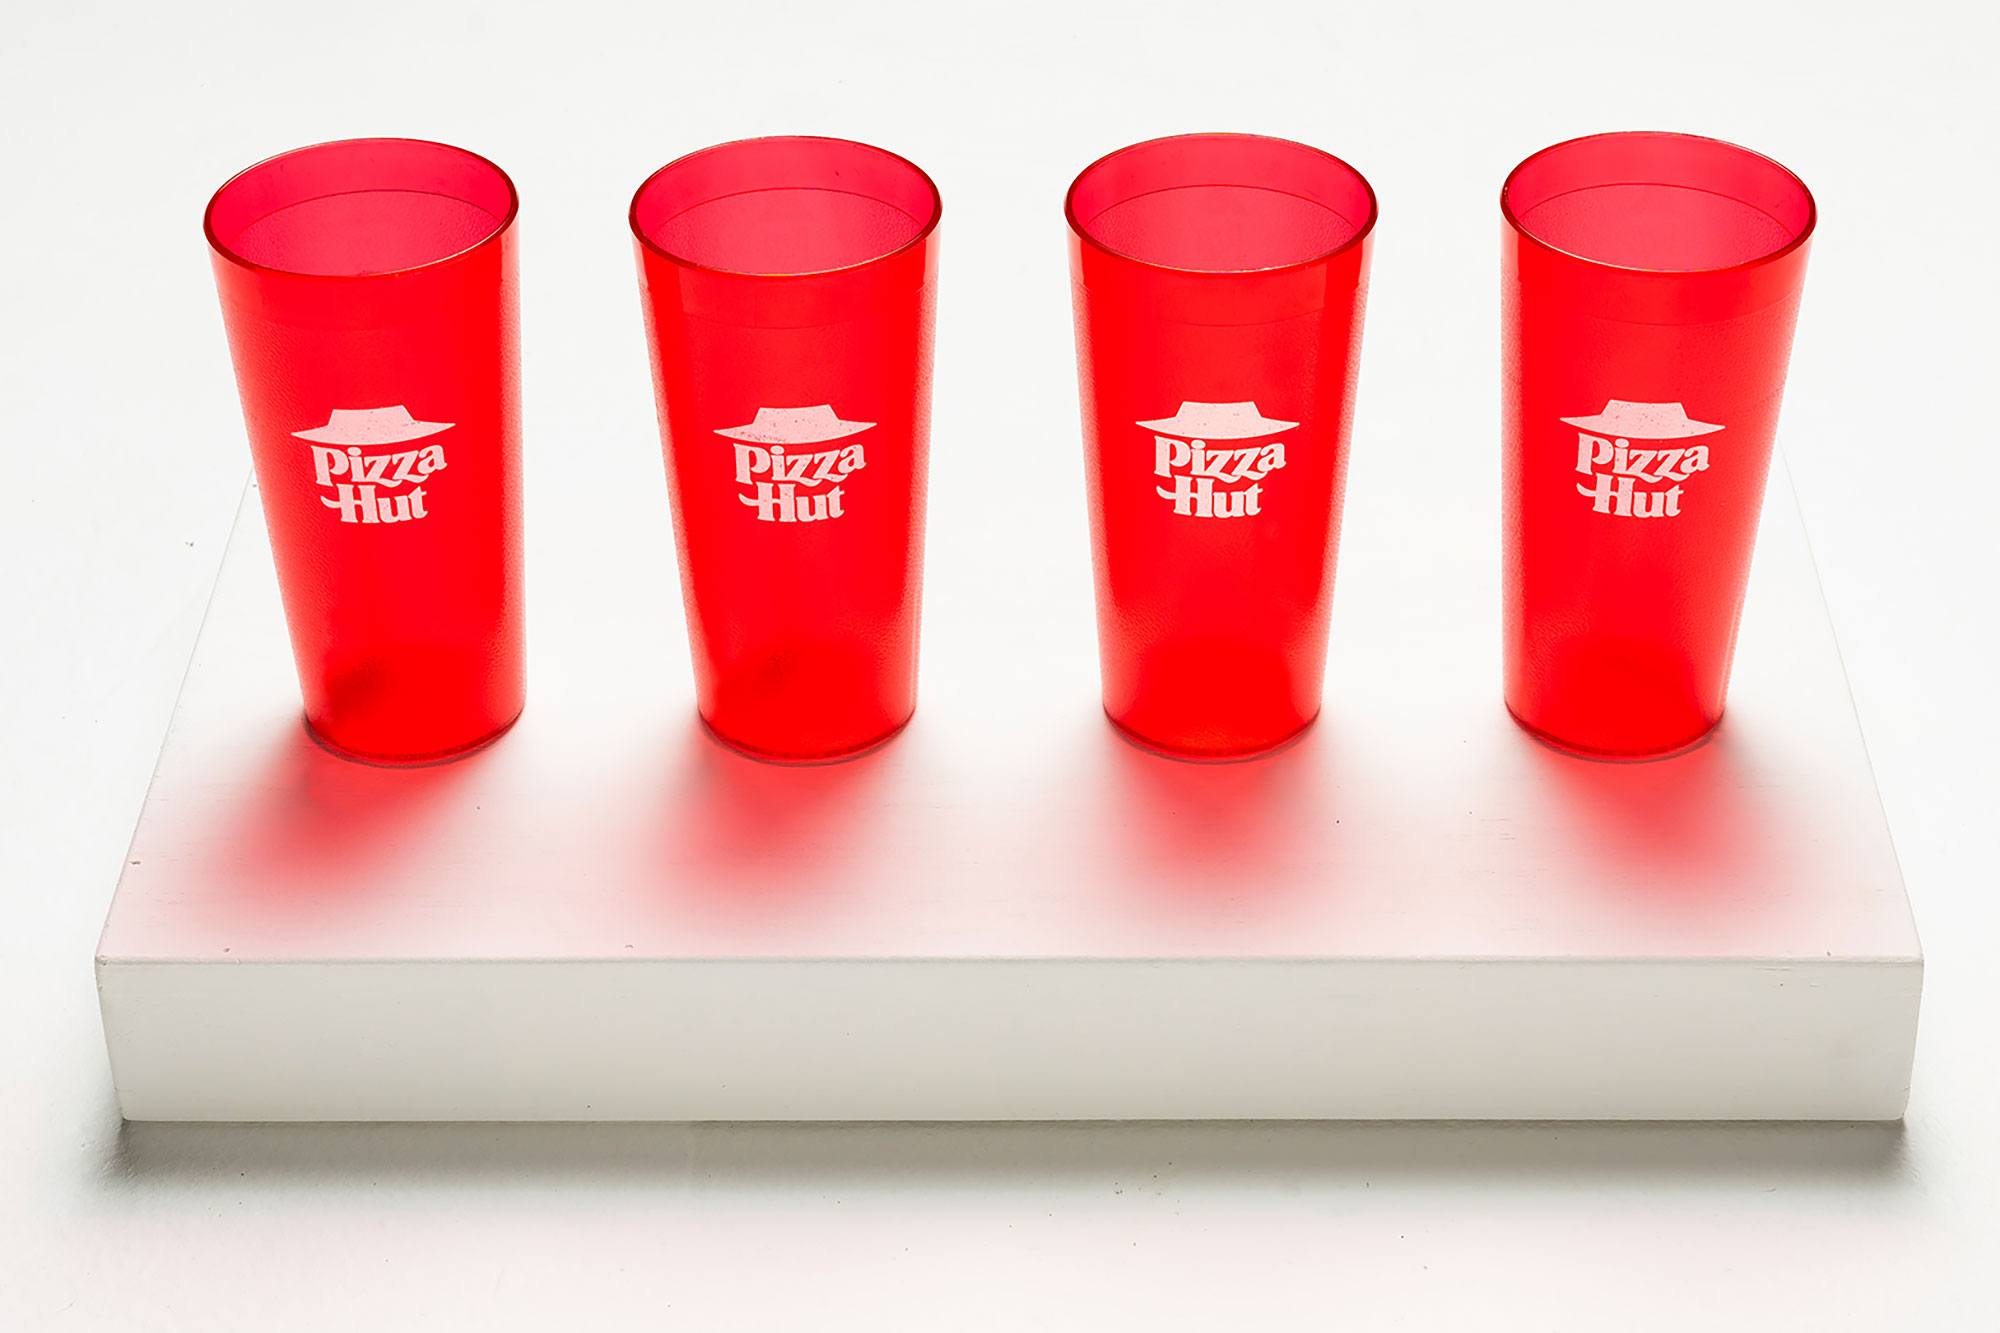 Pizza Hut red cups